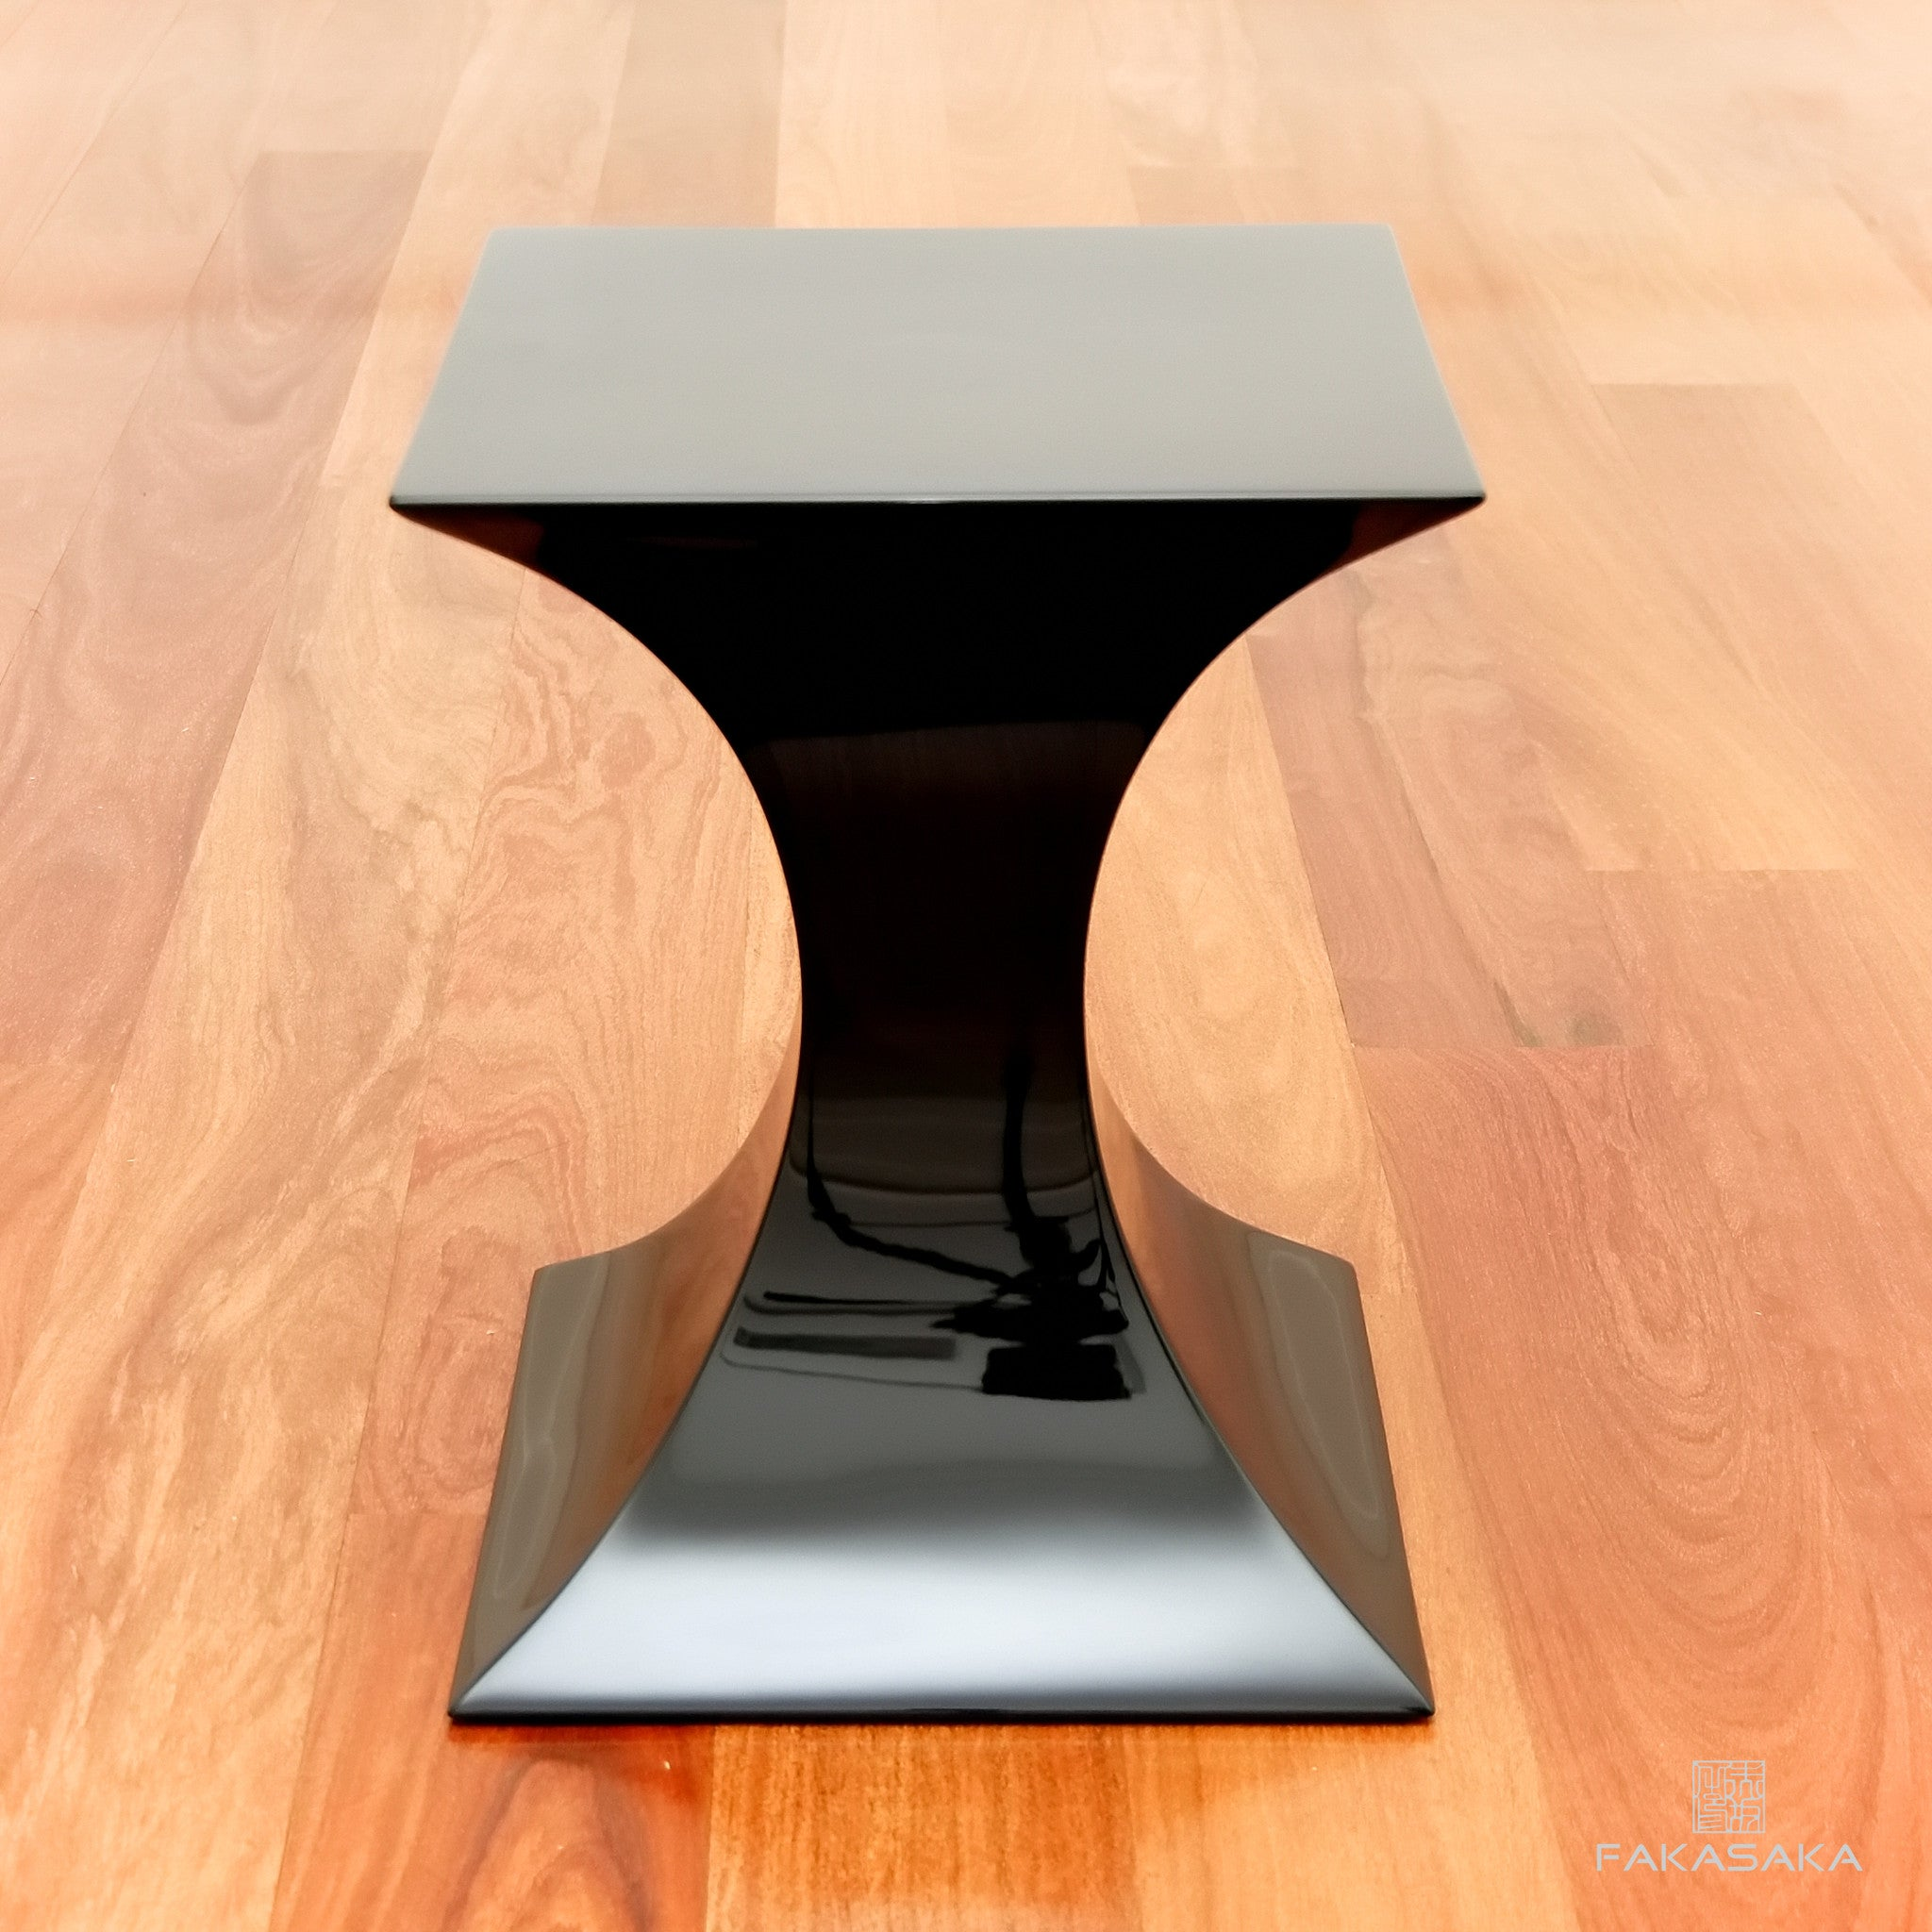 FA7 STOOL / SIDE TABLE / DRINK TABLE <br><br>LACQUER BLACK